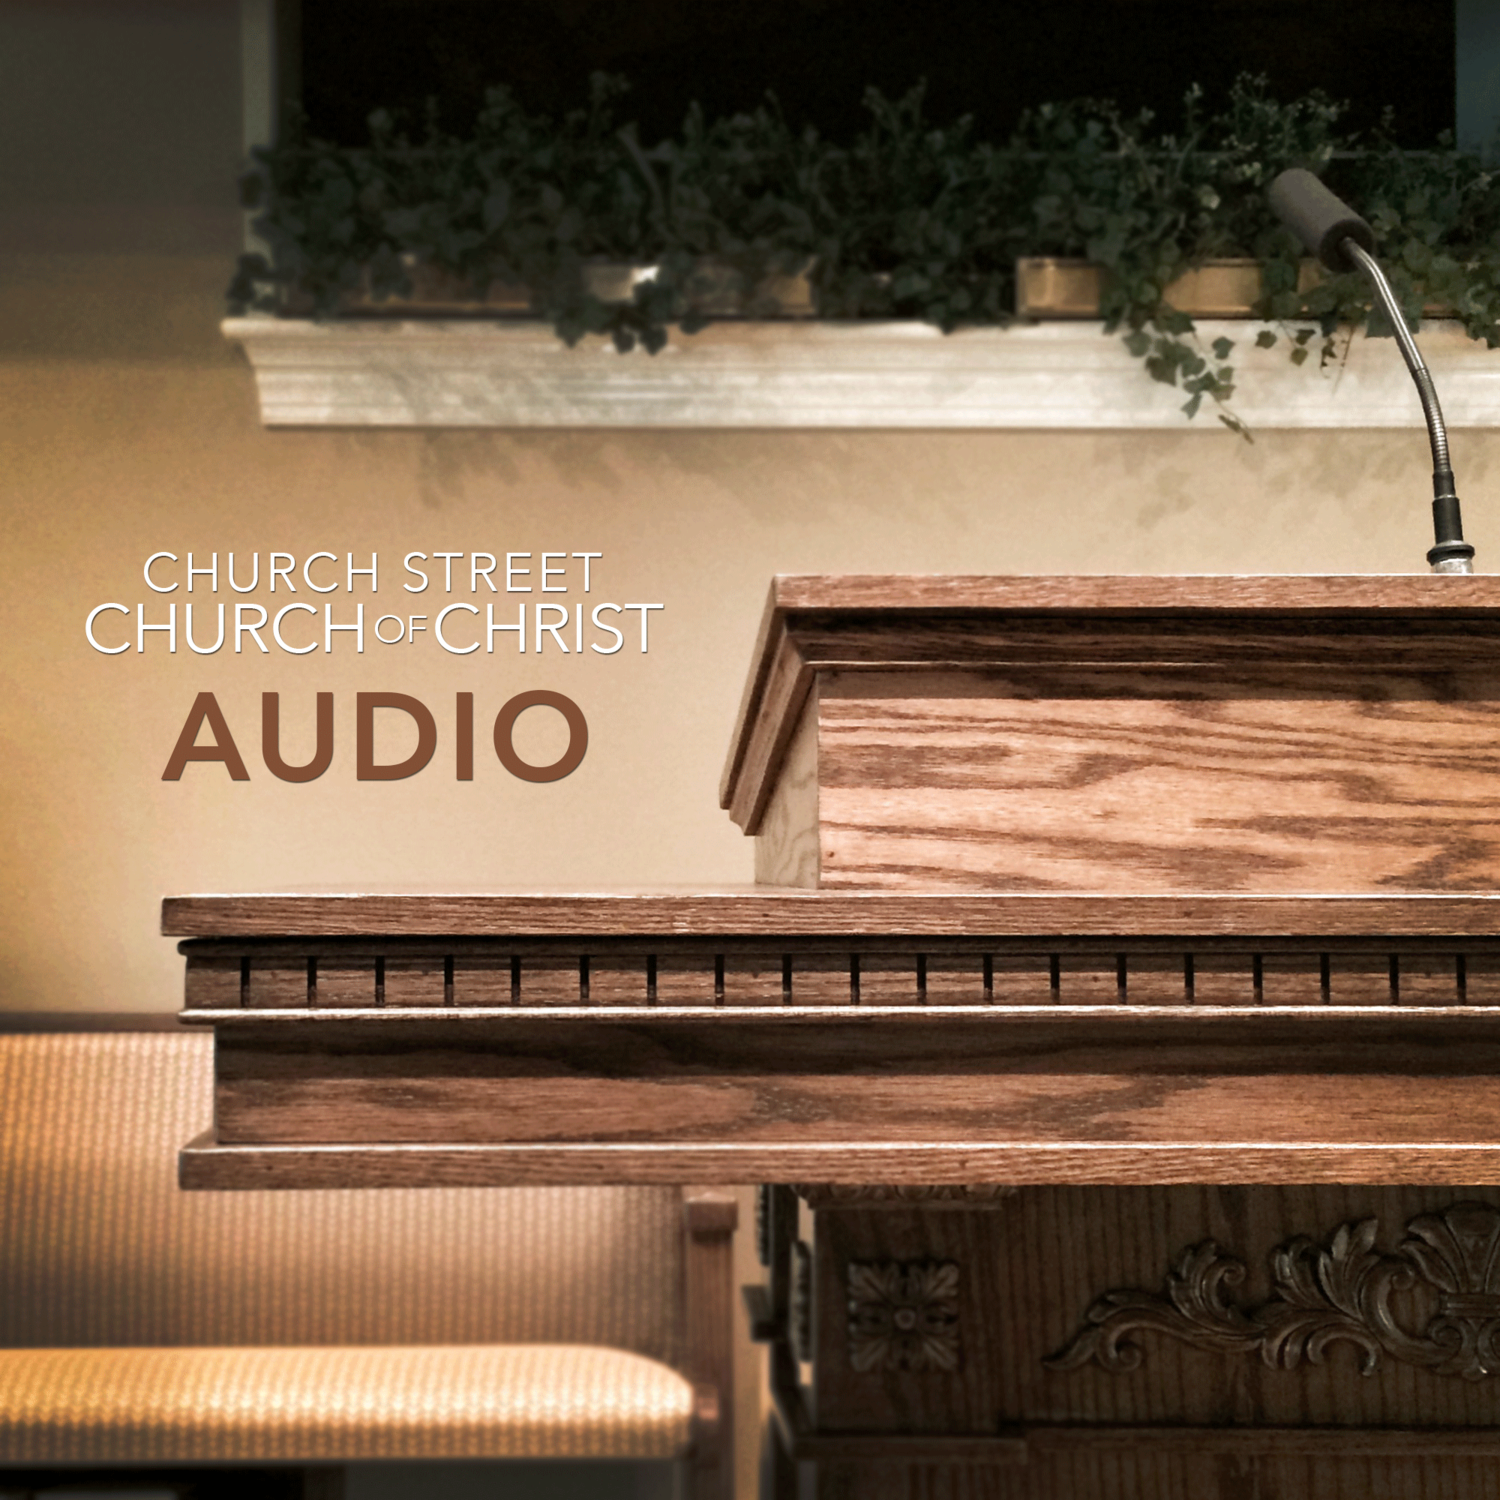 Audio - Church Street Church of Christ